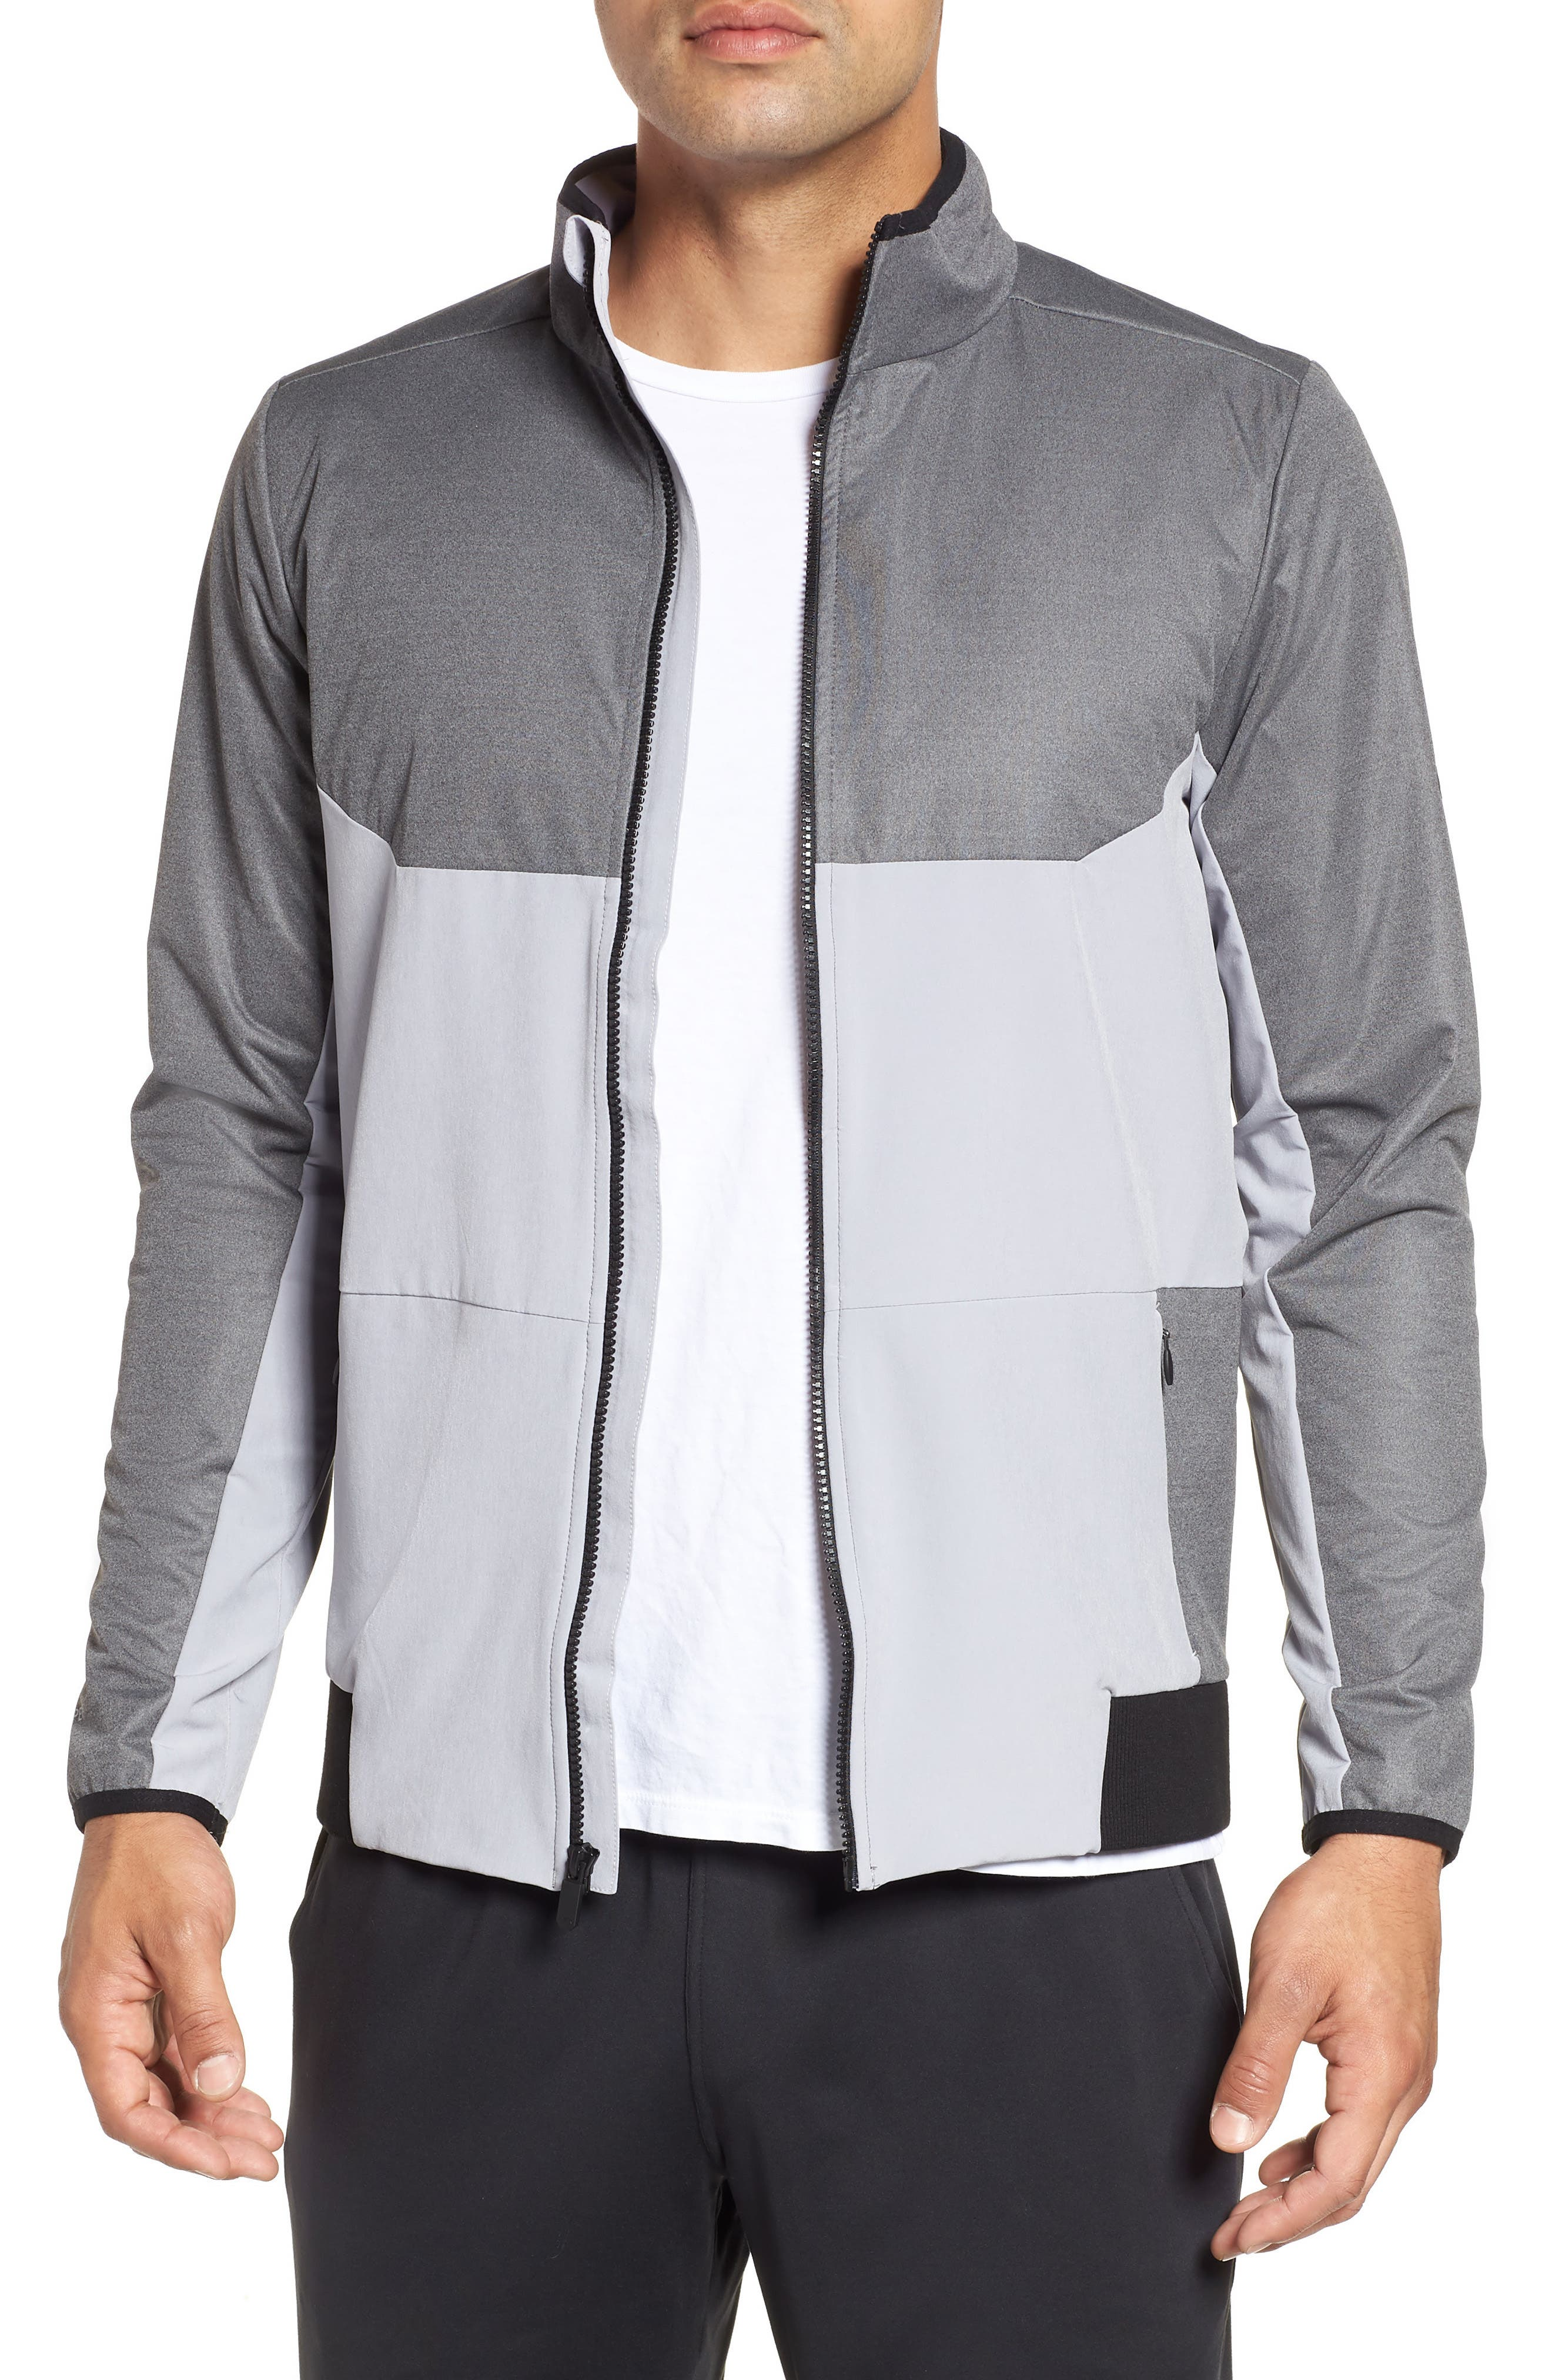 Gore<sup>®</sup> Windstopper<sup>®</sup> Full Zip Jacket,                         Main,                         color, CHARCOAL / OVERCAST